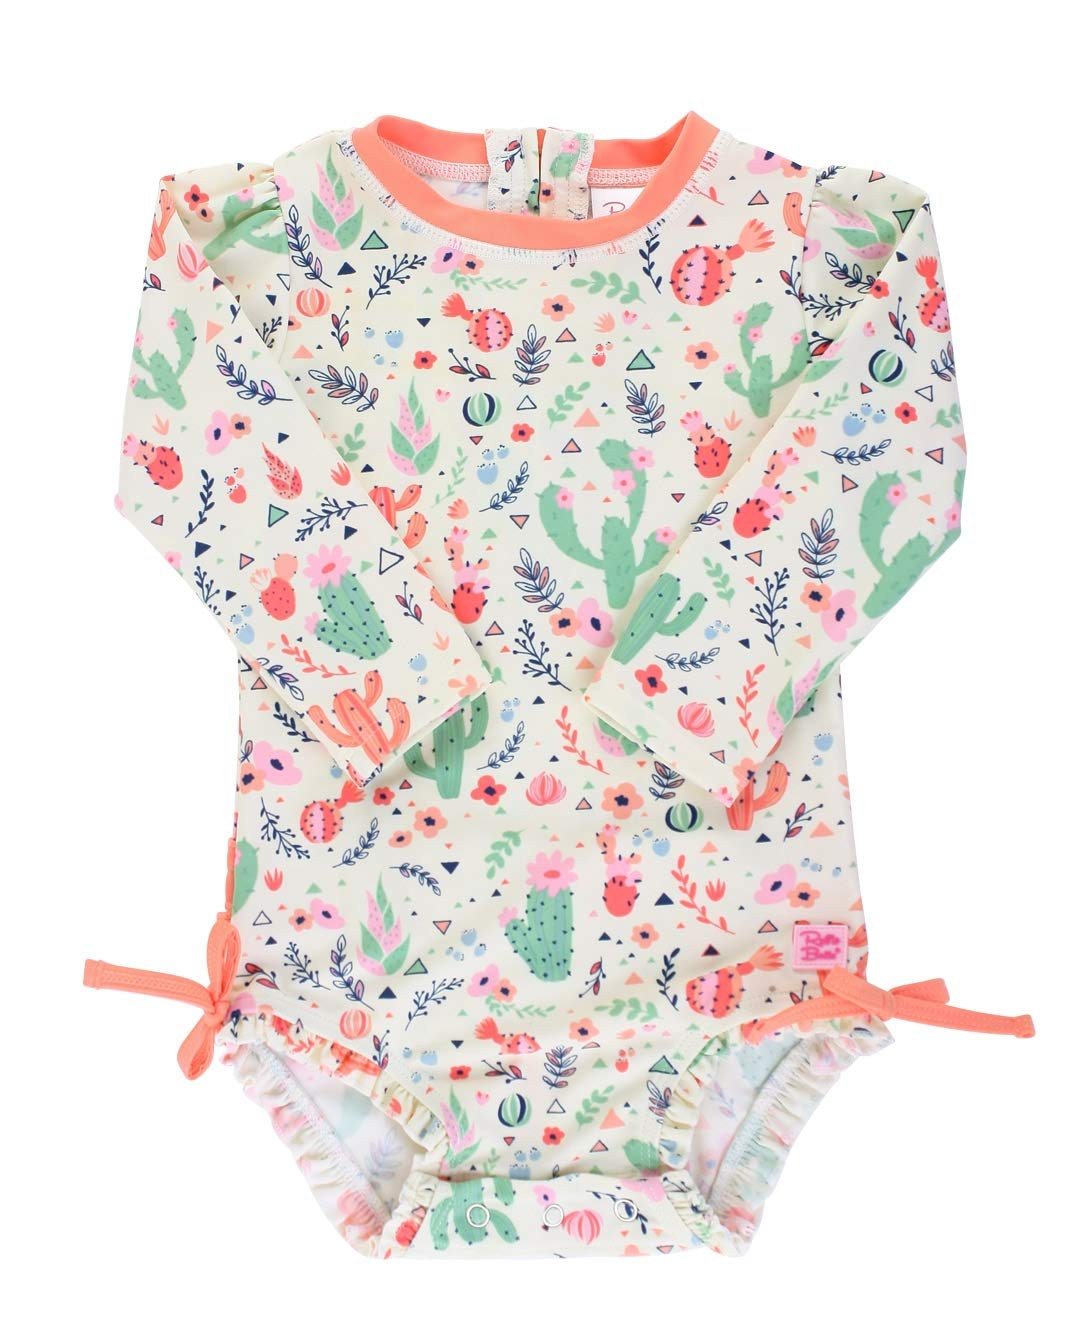 Sun Protection Long Sleeve One Piece Swimsuit with Zipper RuffleButts Baby//Toddler Girls UPF 50